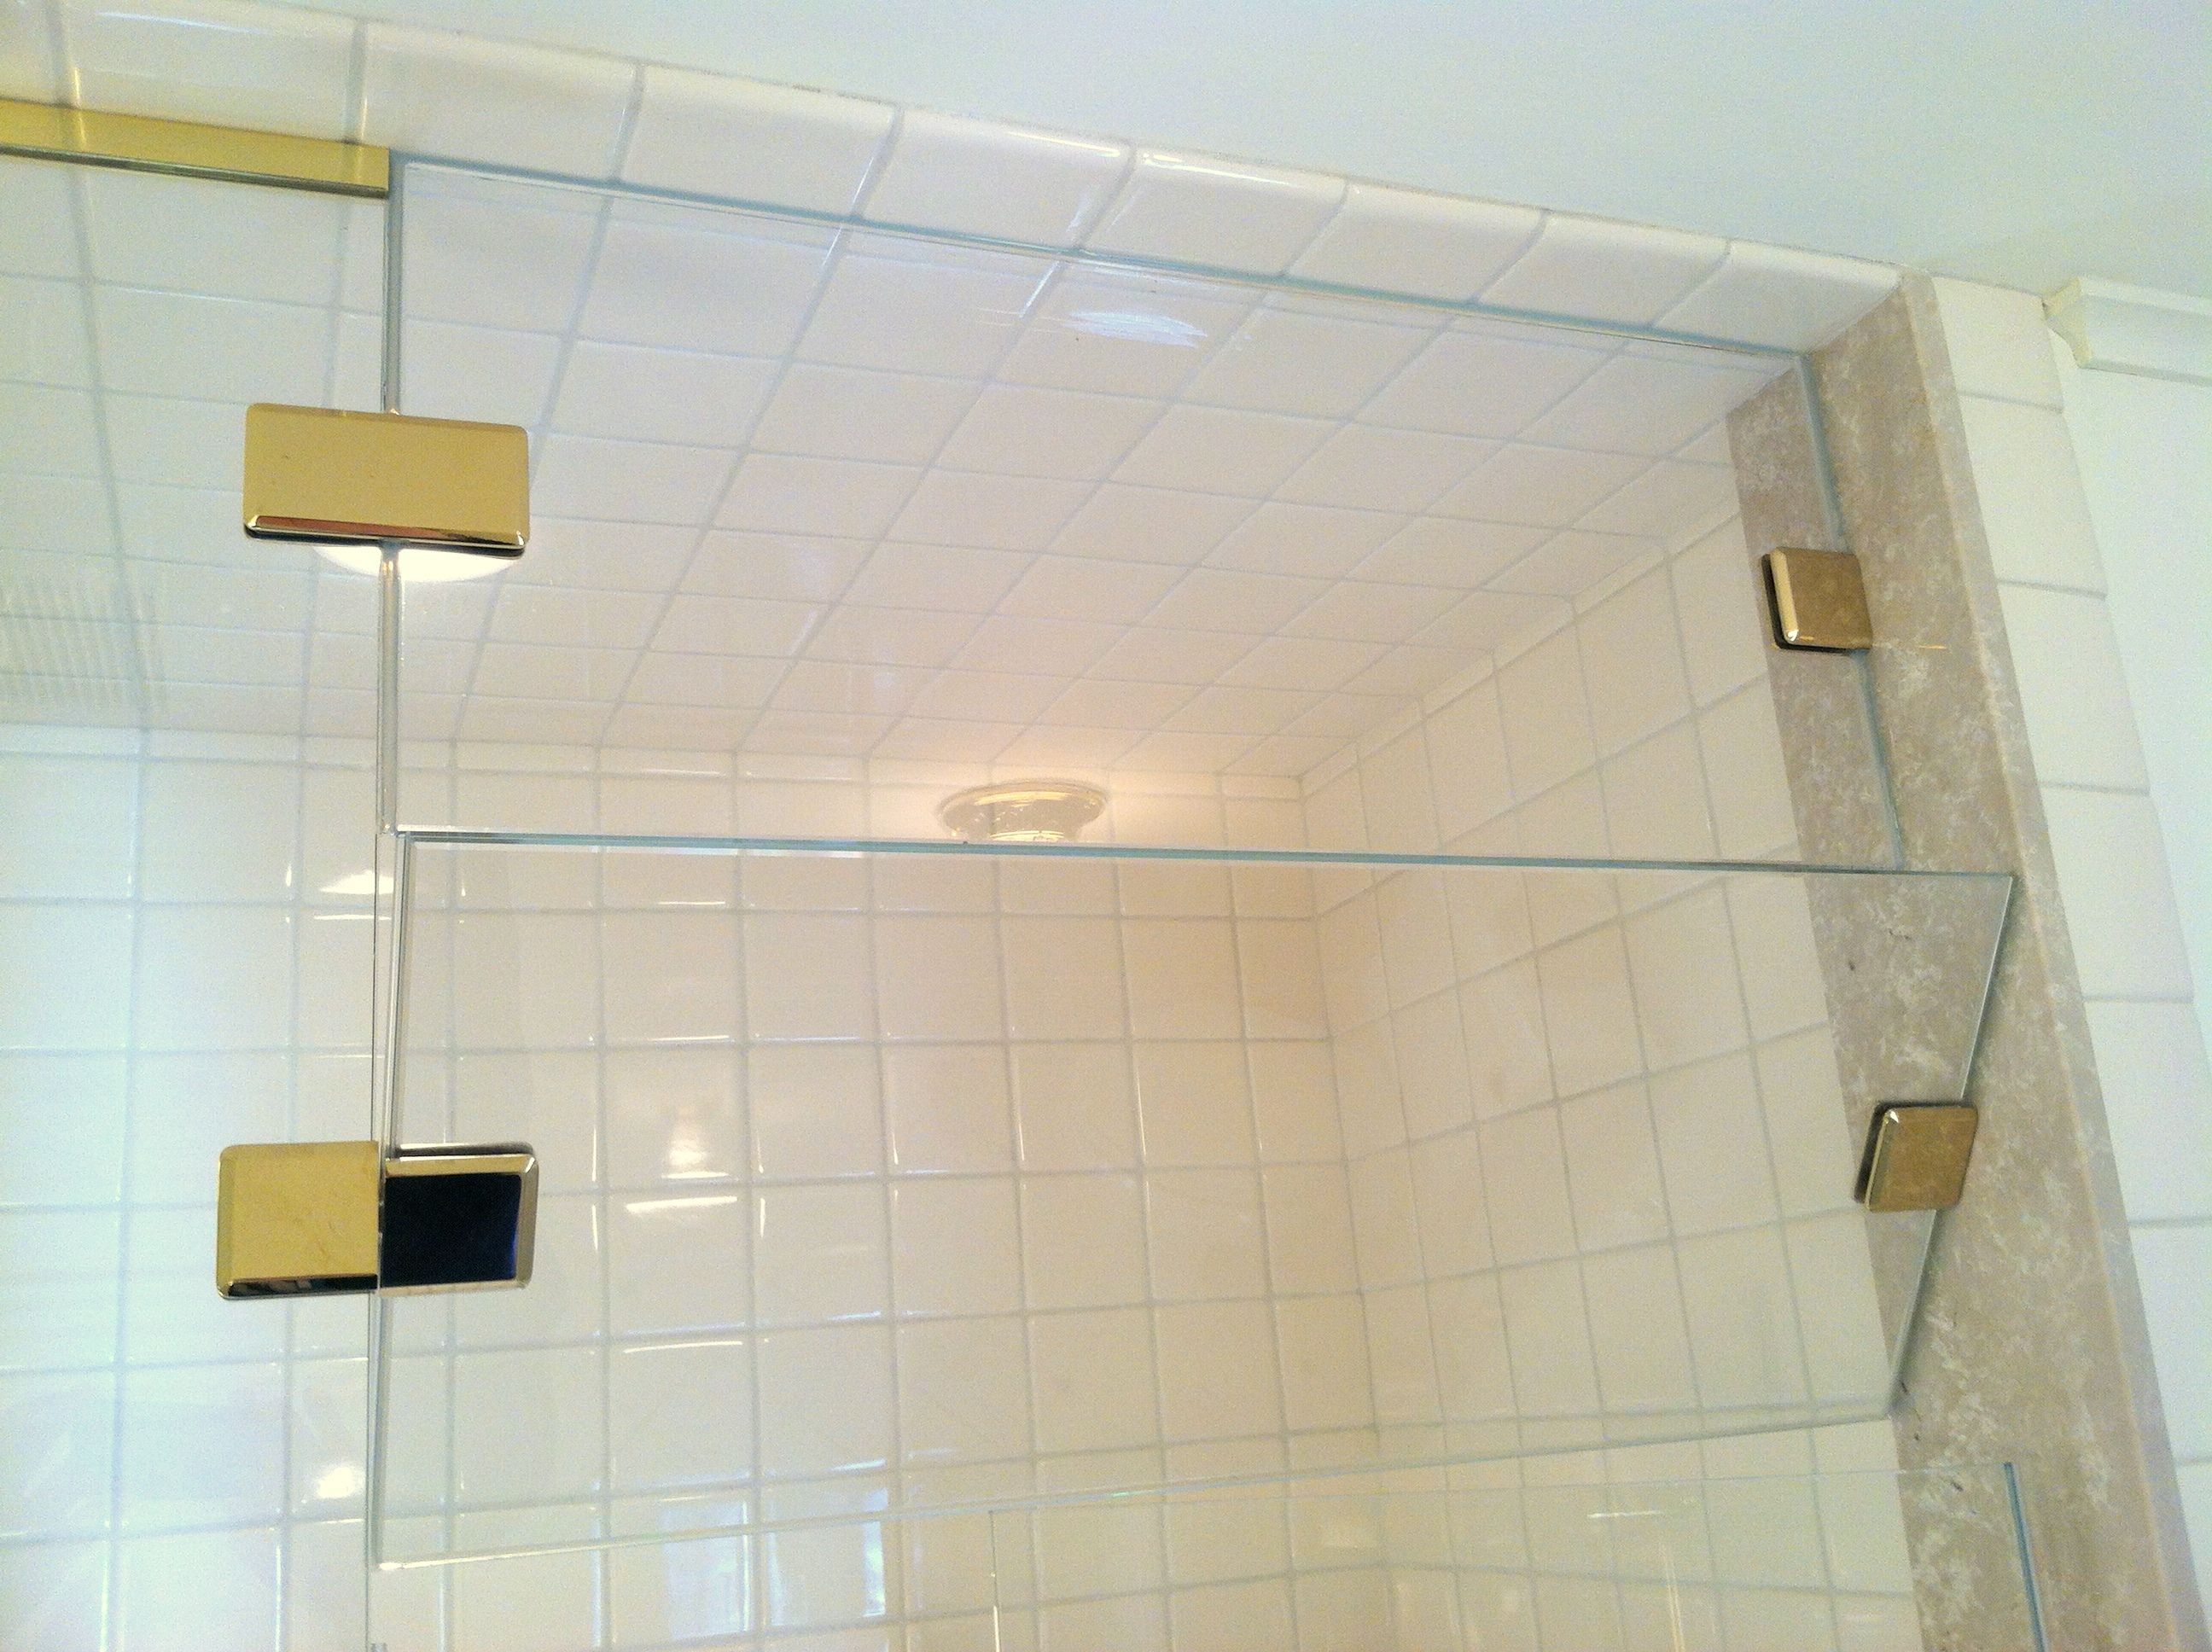 Custom Shower Doors Use This Design For Extra Tall Steam Shower